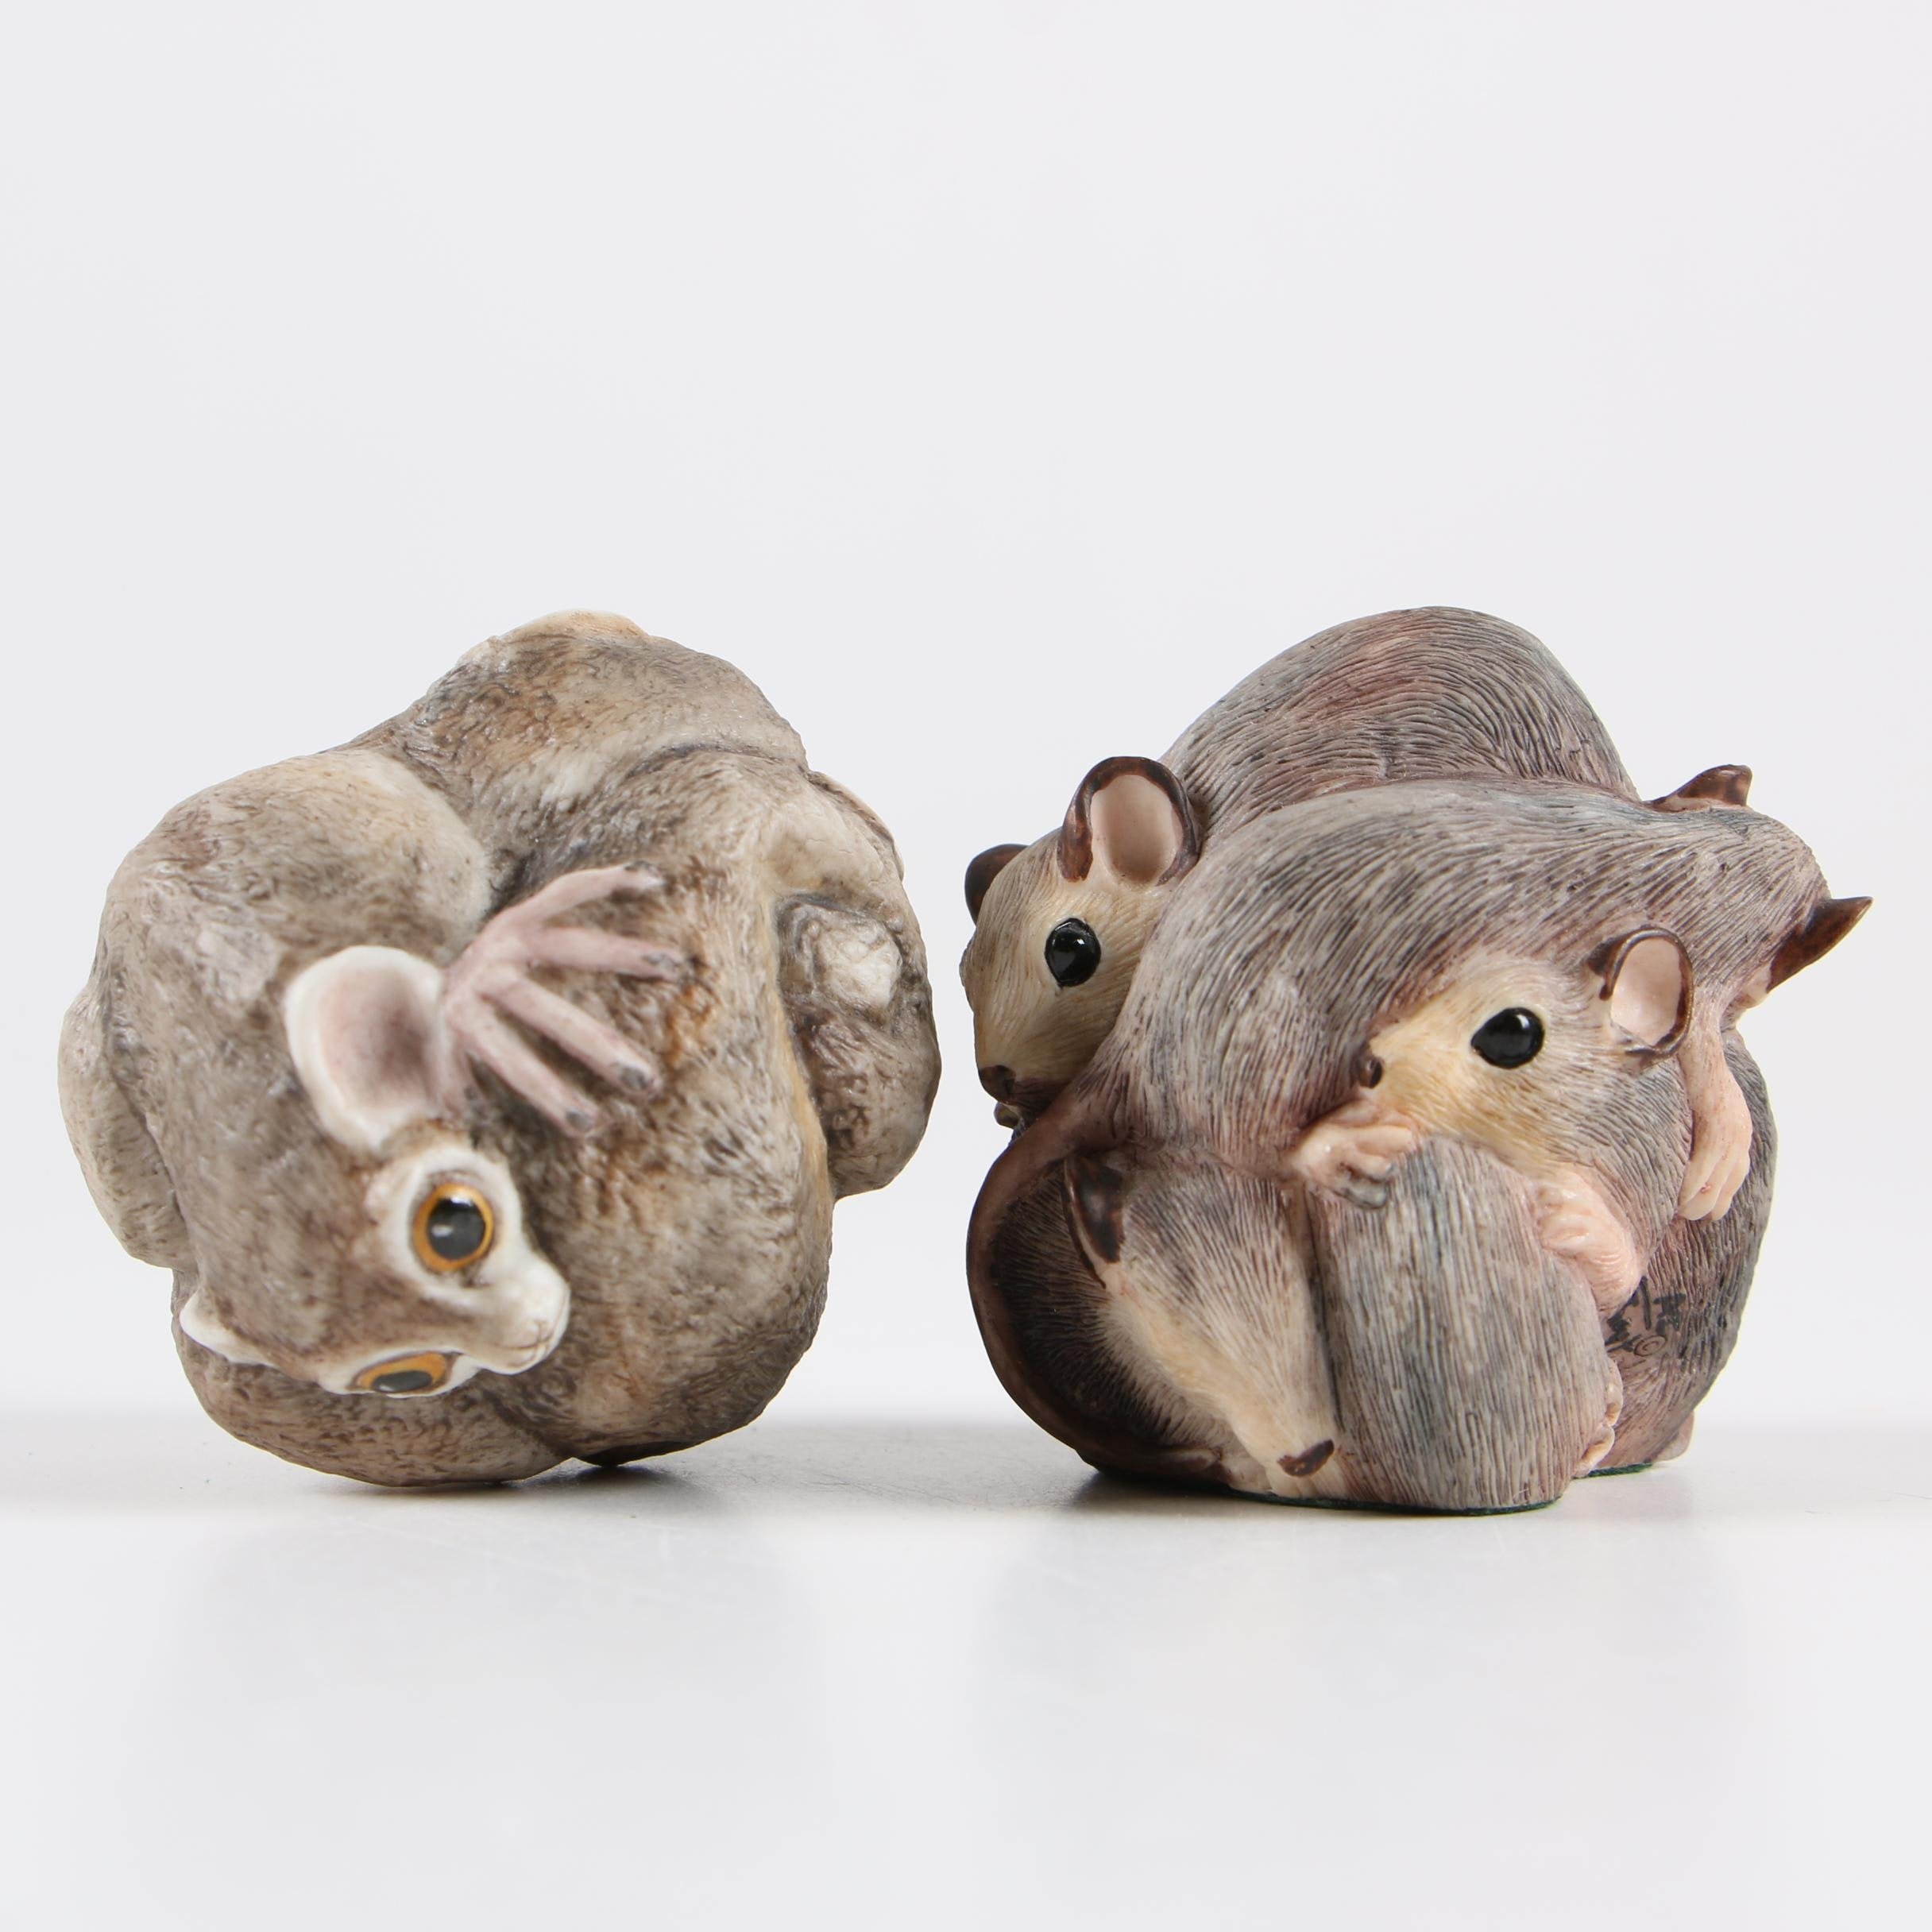 Boehm Porcelain Lemur and Resin Mouse Figurine